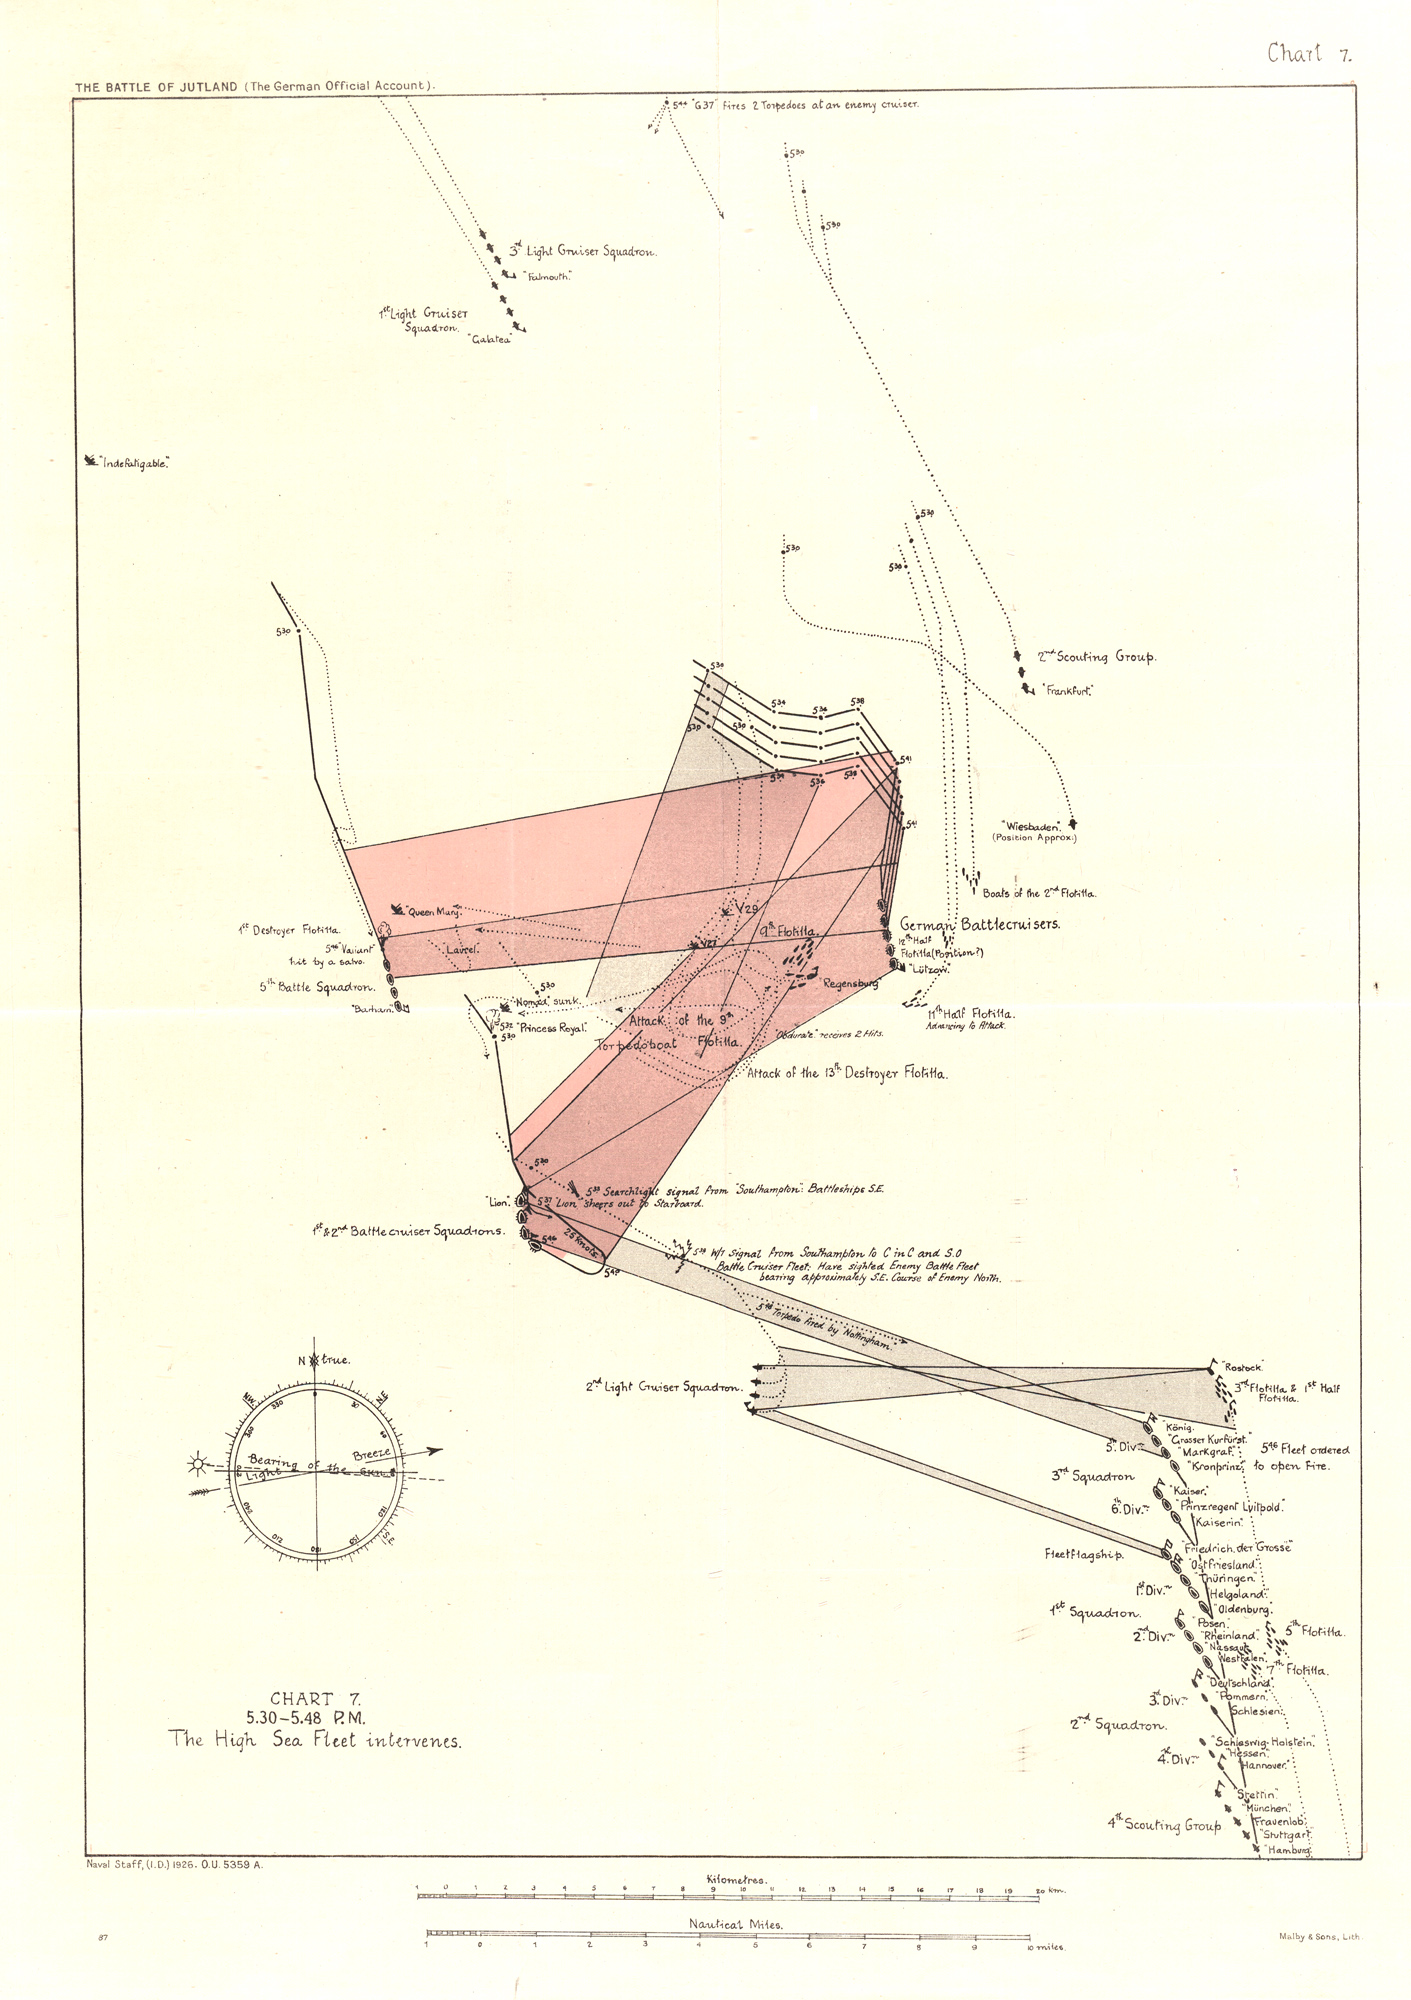 Chart plotting the locations and movements of the Allied and German ships between 5.30pm and 5.48pm during the Battle of Jutland on 31 May 1916.